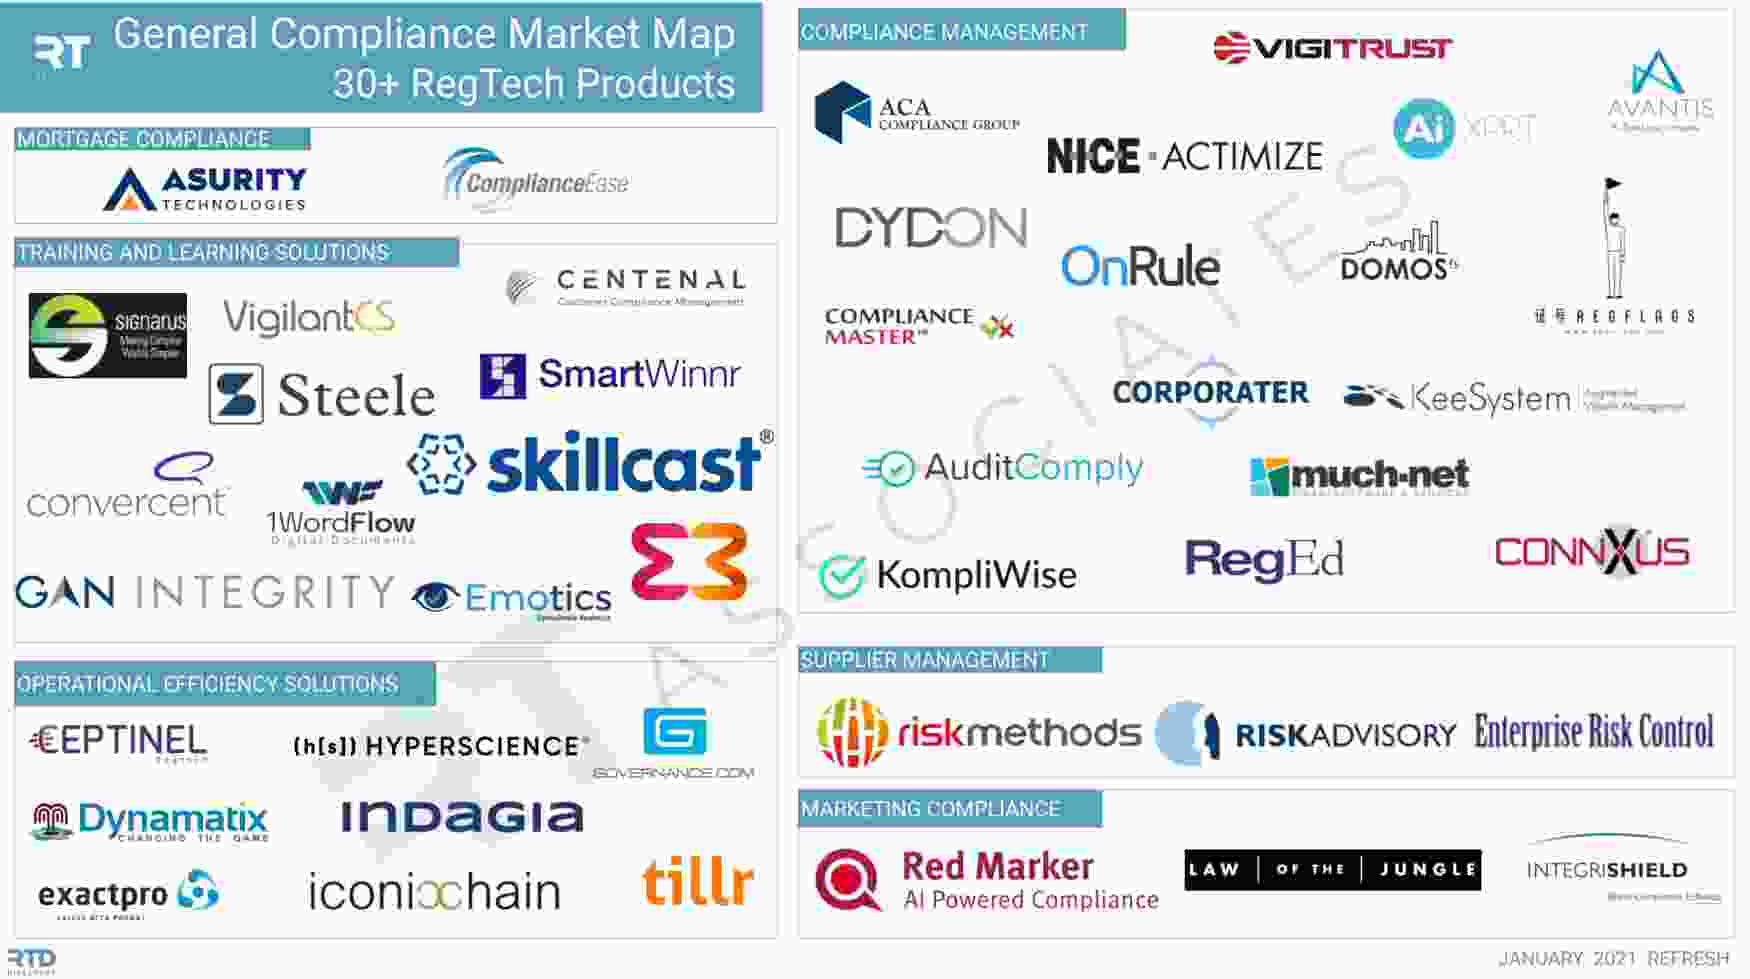 General Compliance Market Map (low qual) RegTech Associates